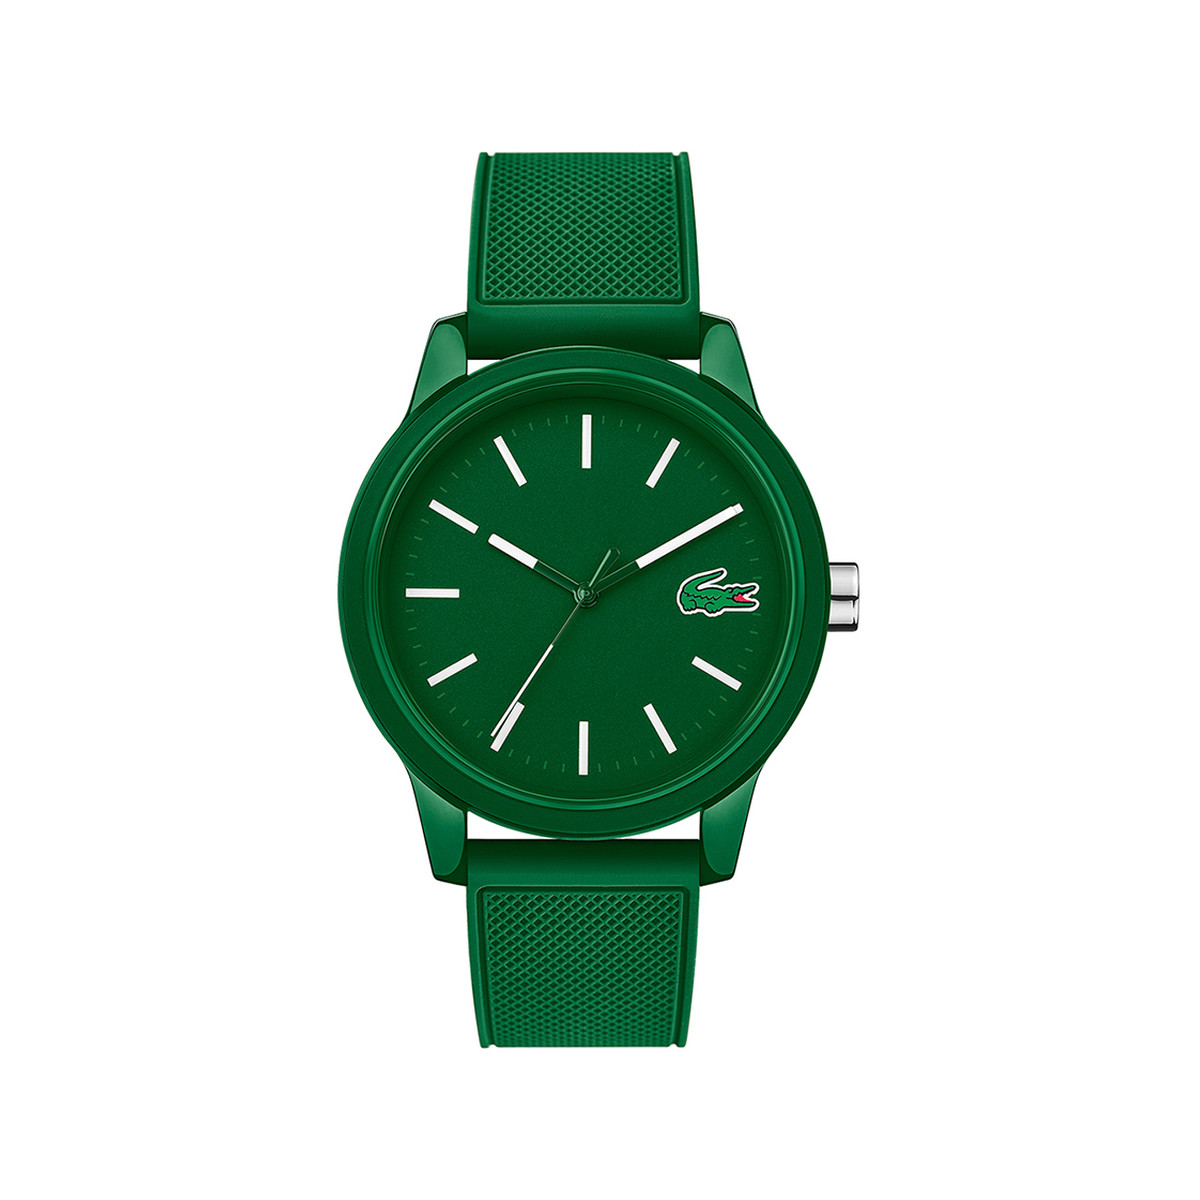 Vert Lacoste Resine Silicone Montre Mixte EH29ID